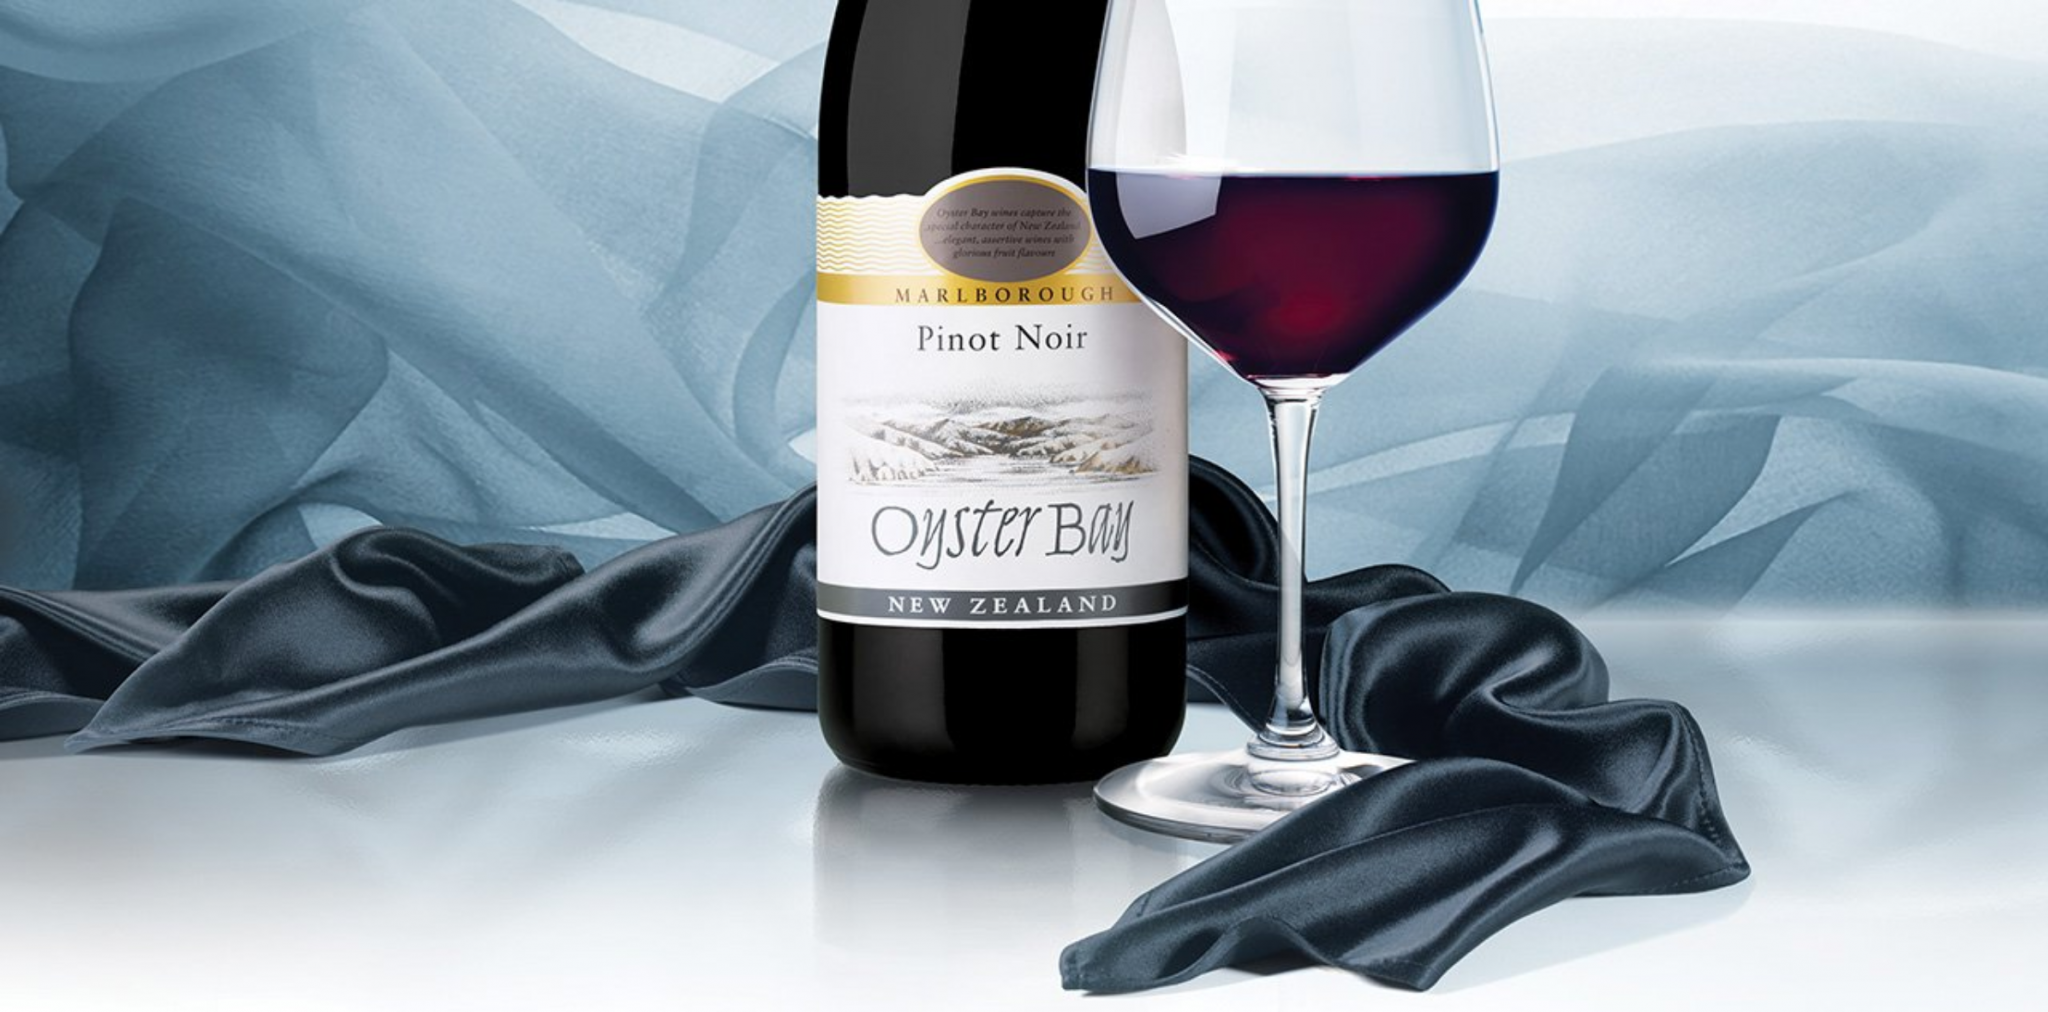 Image courtesy of http://www.oysterbaywines.com/wine/marlborough-pinot-noir